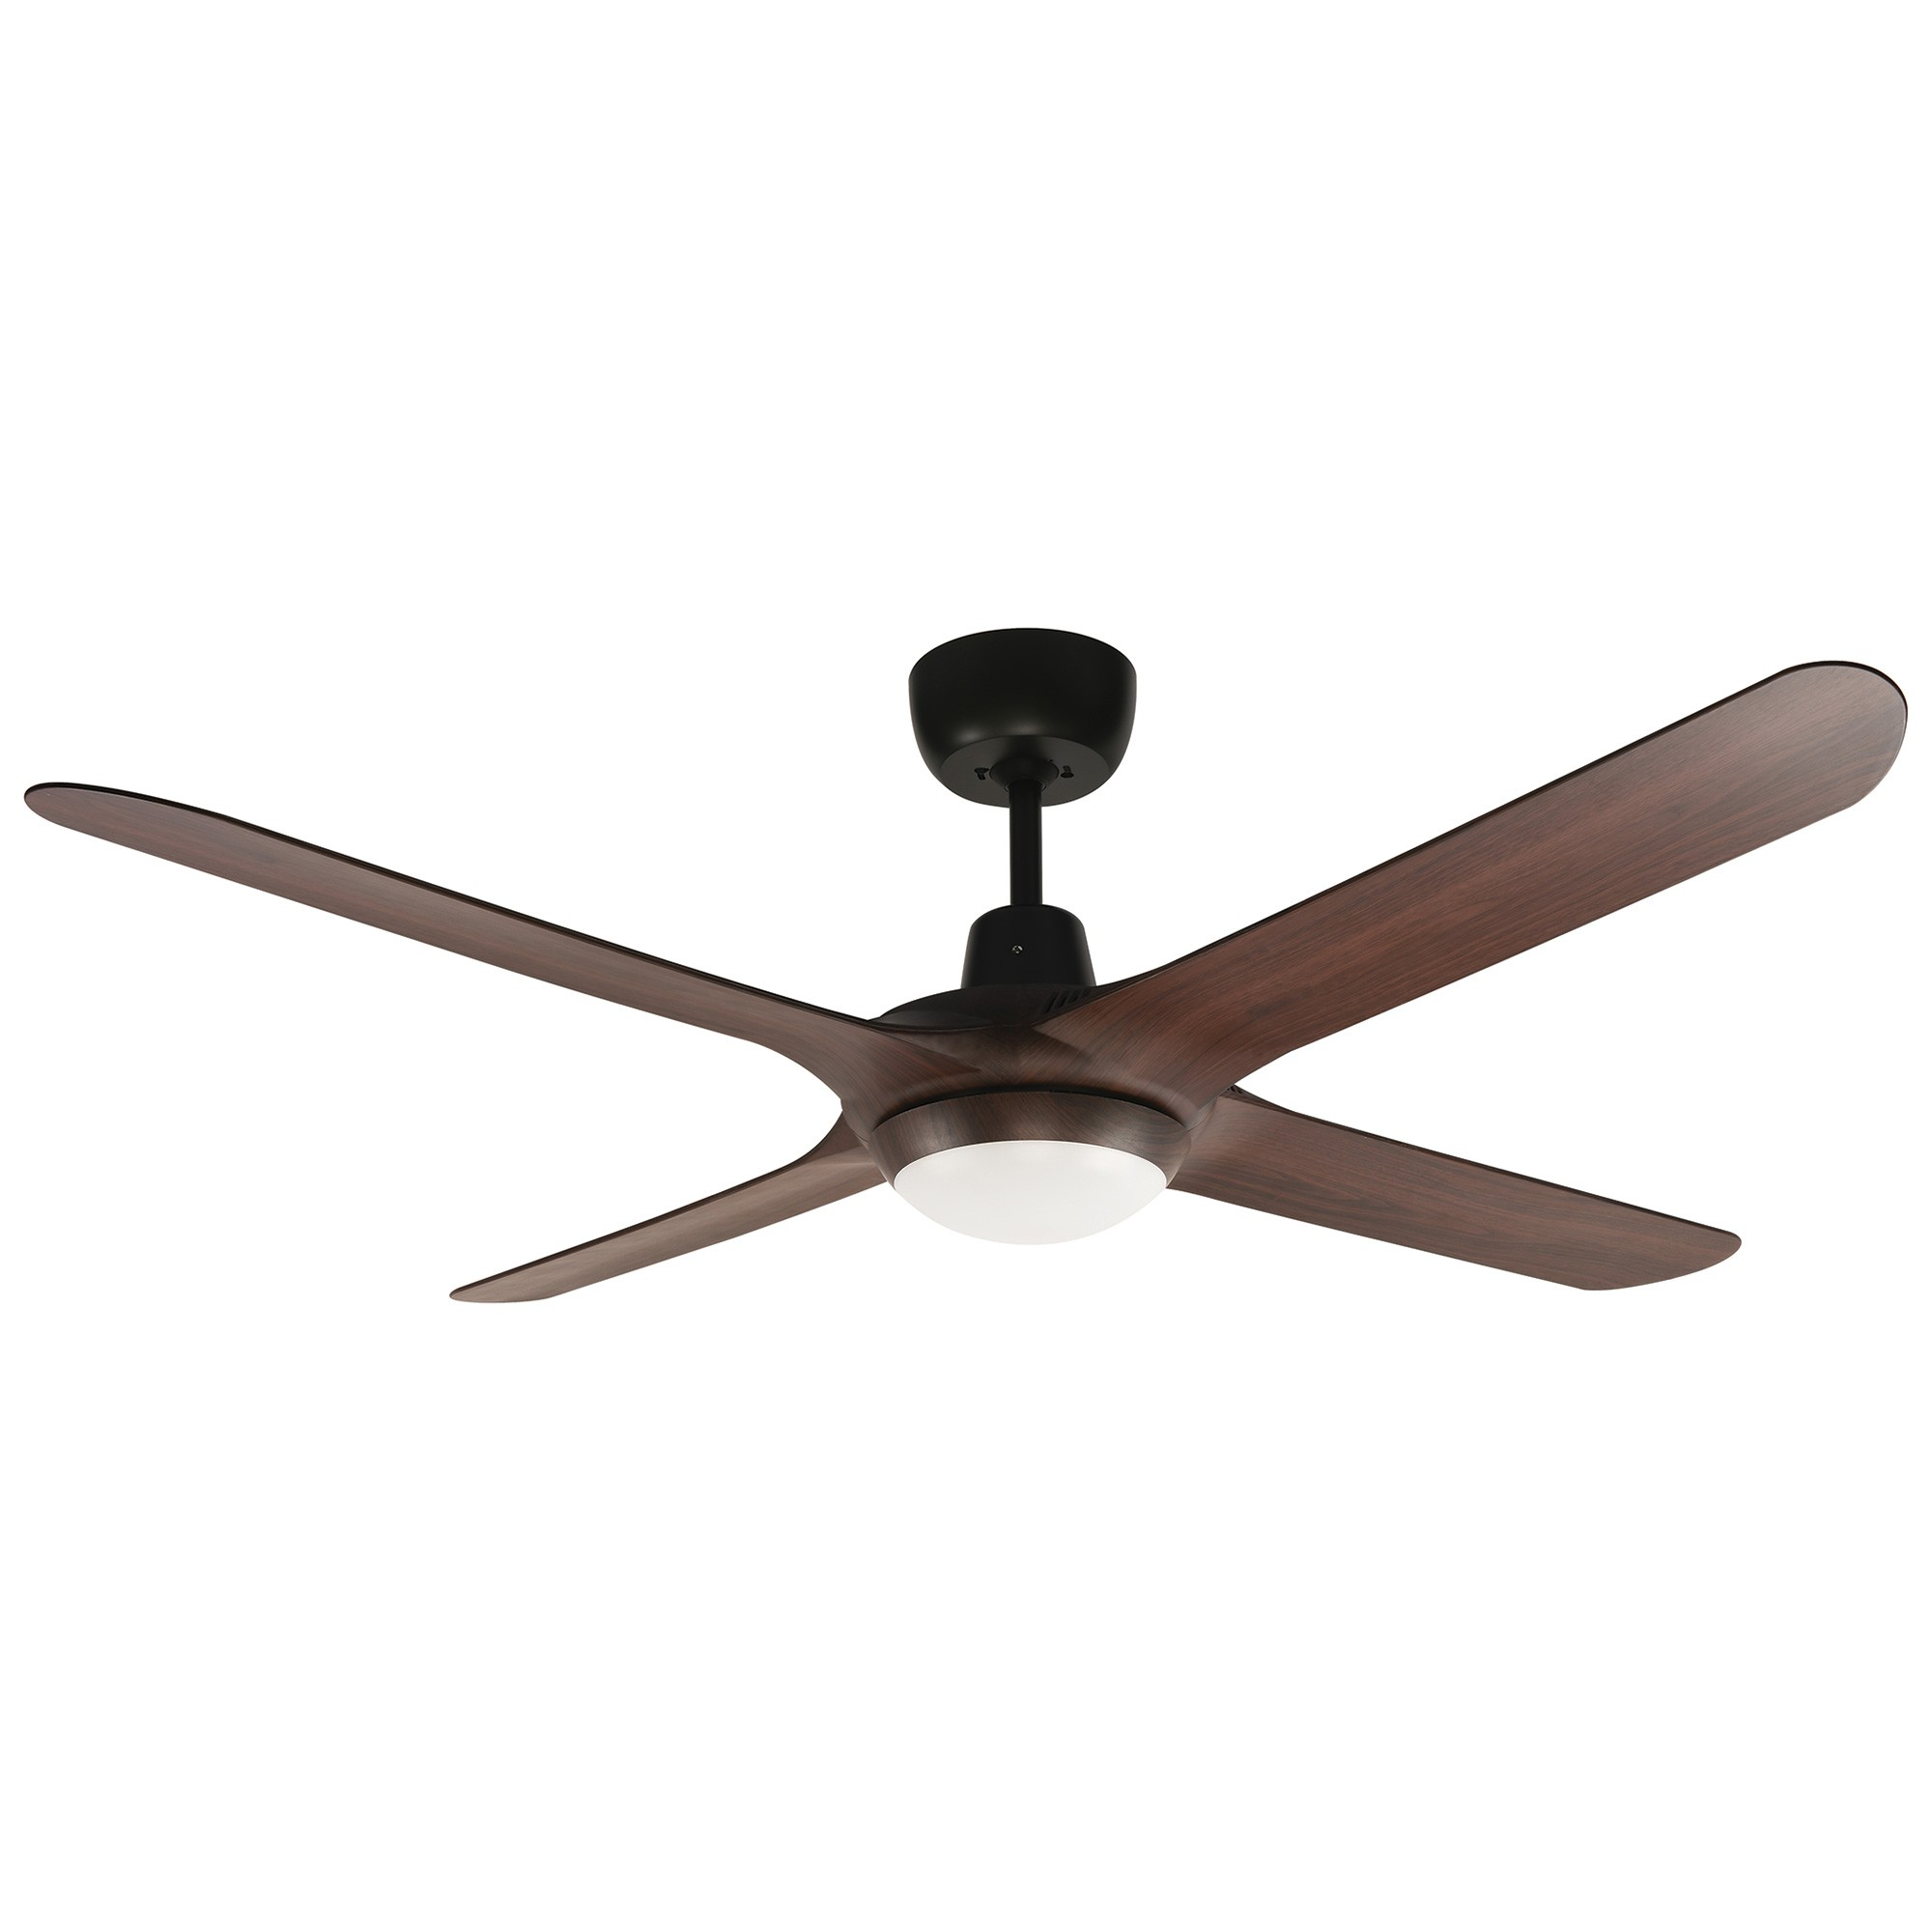 Ventair Spyda Commercial Grade Indoor / Outdoor 4 Blade Ceiling Fan with CCT LED Light, 125cm/50